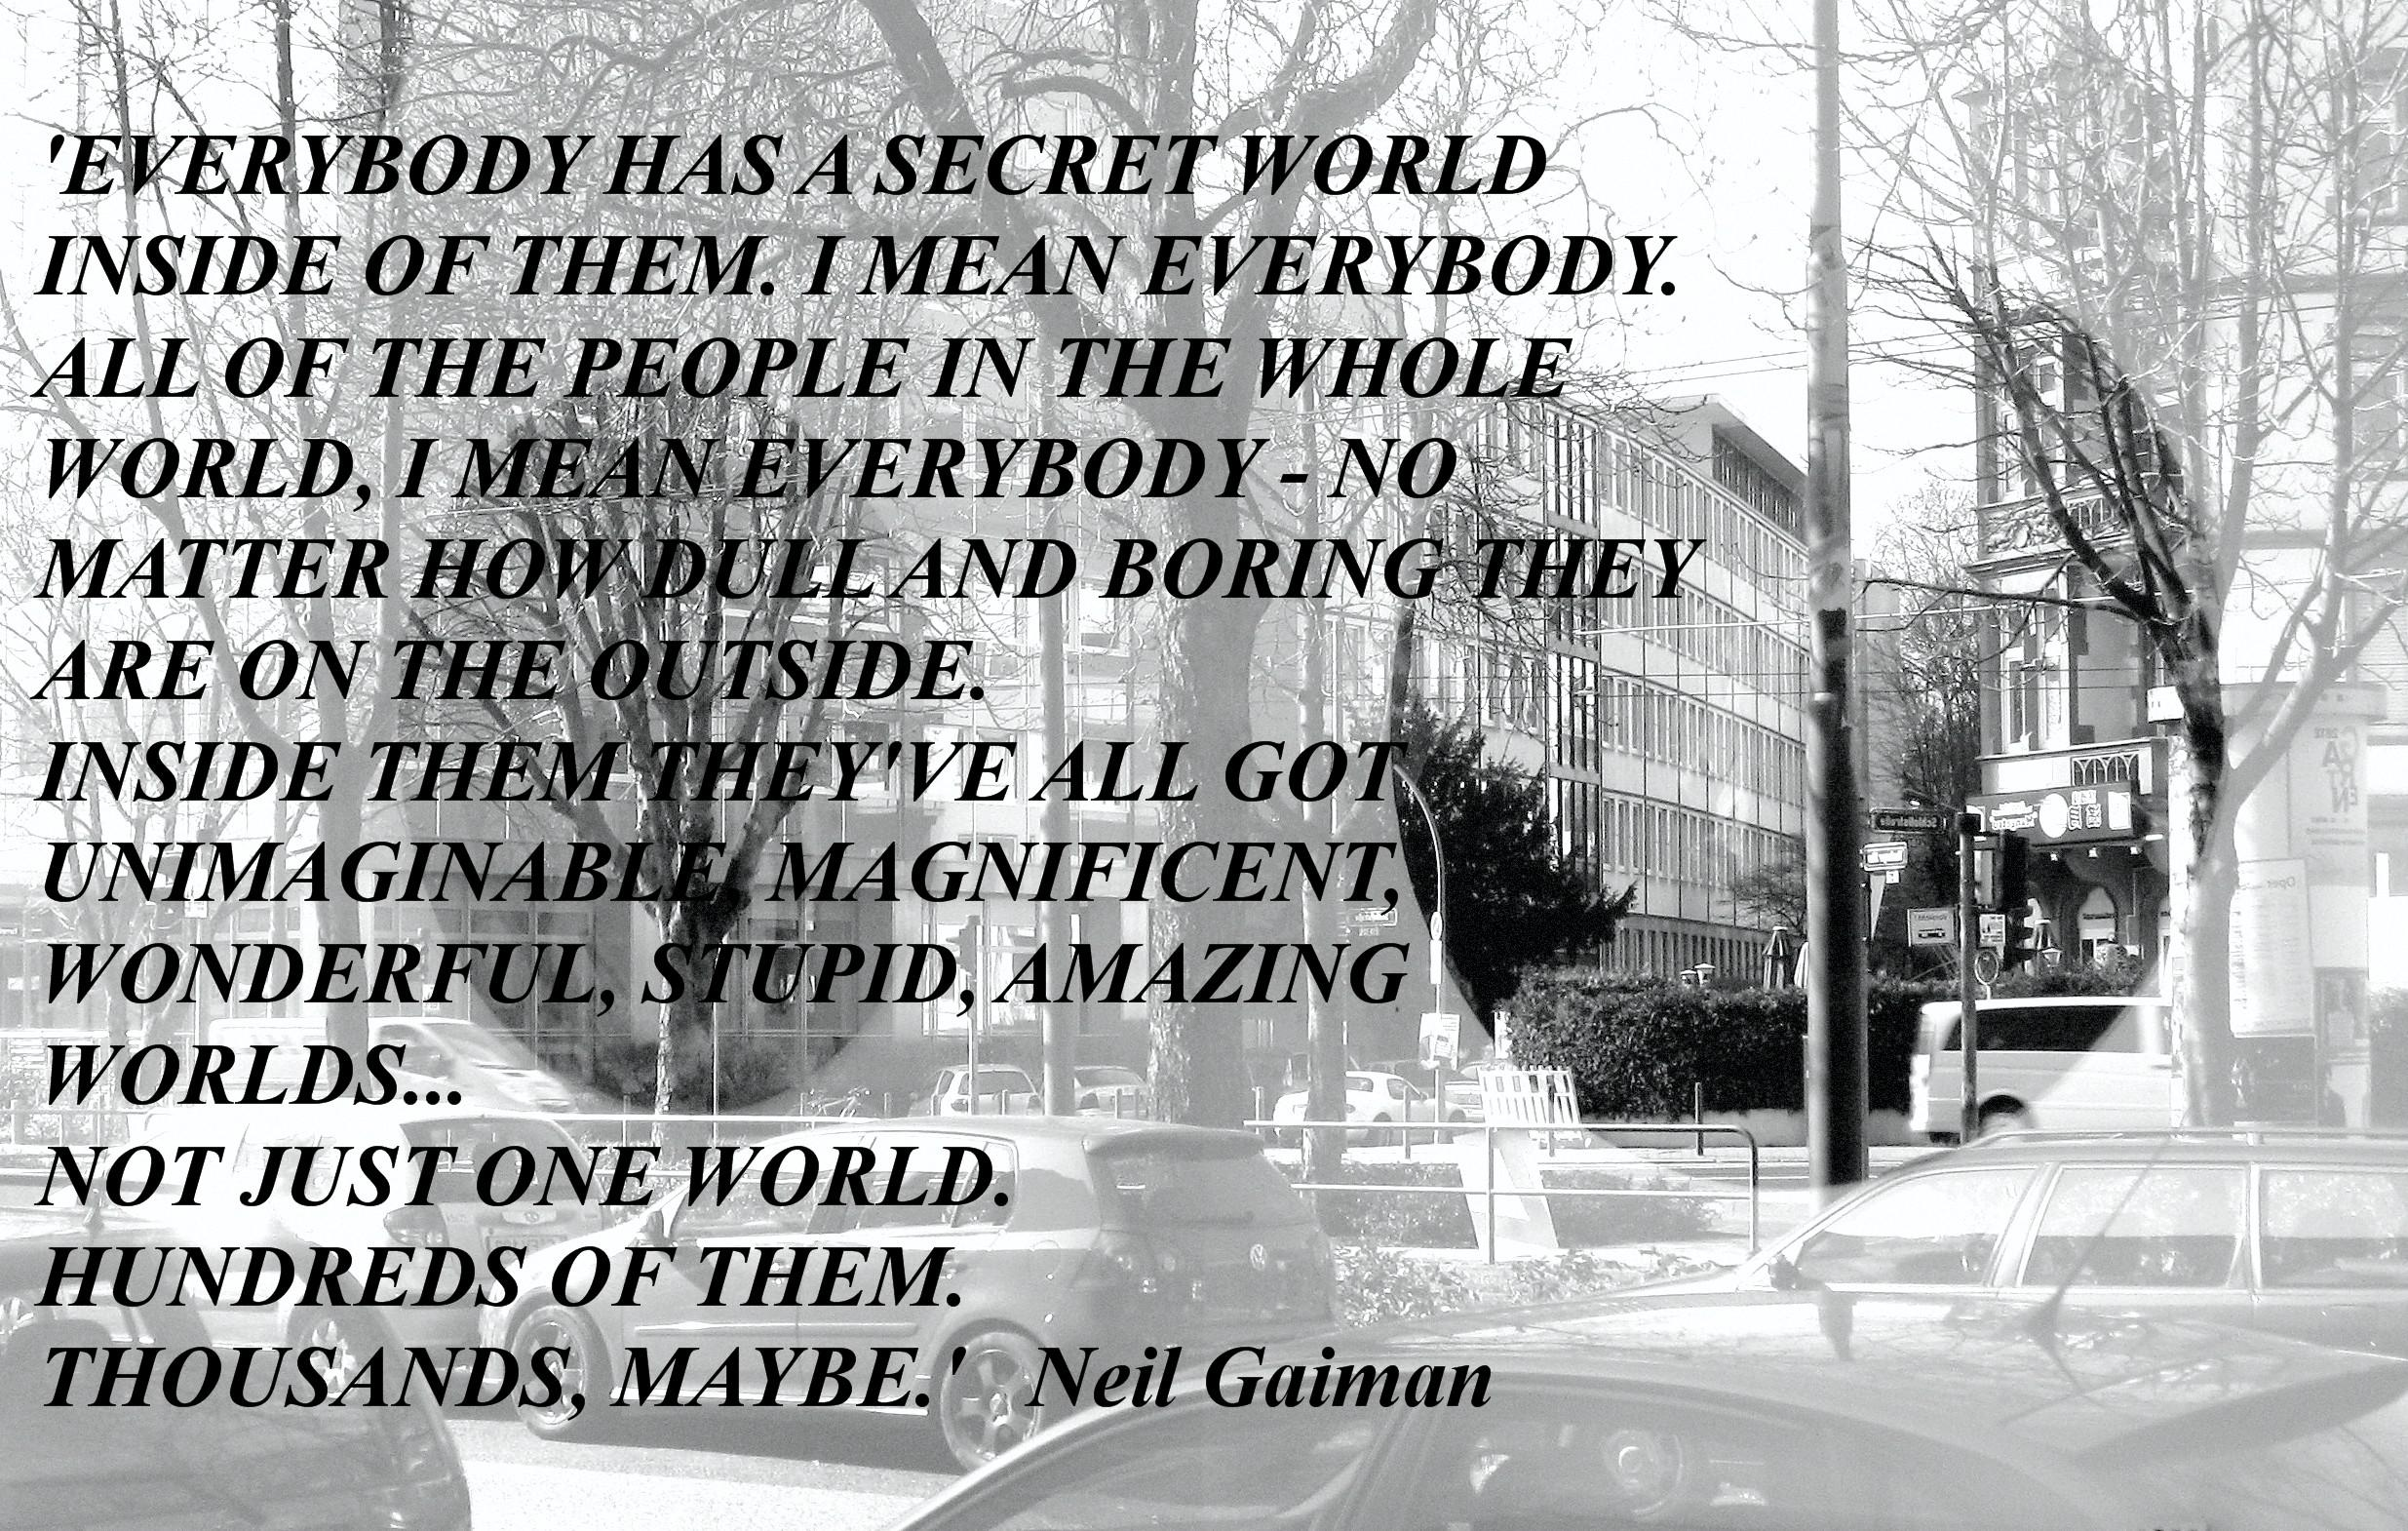 Everybody has a secret world inside of them. Neil Gaiman (2470×1570)